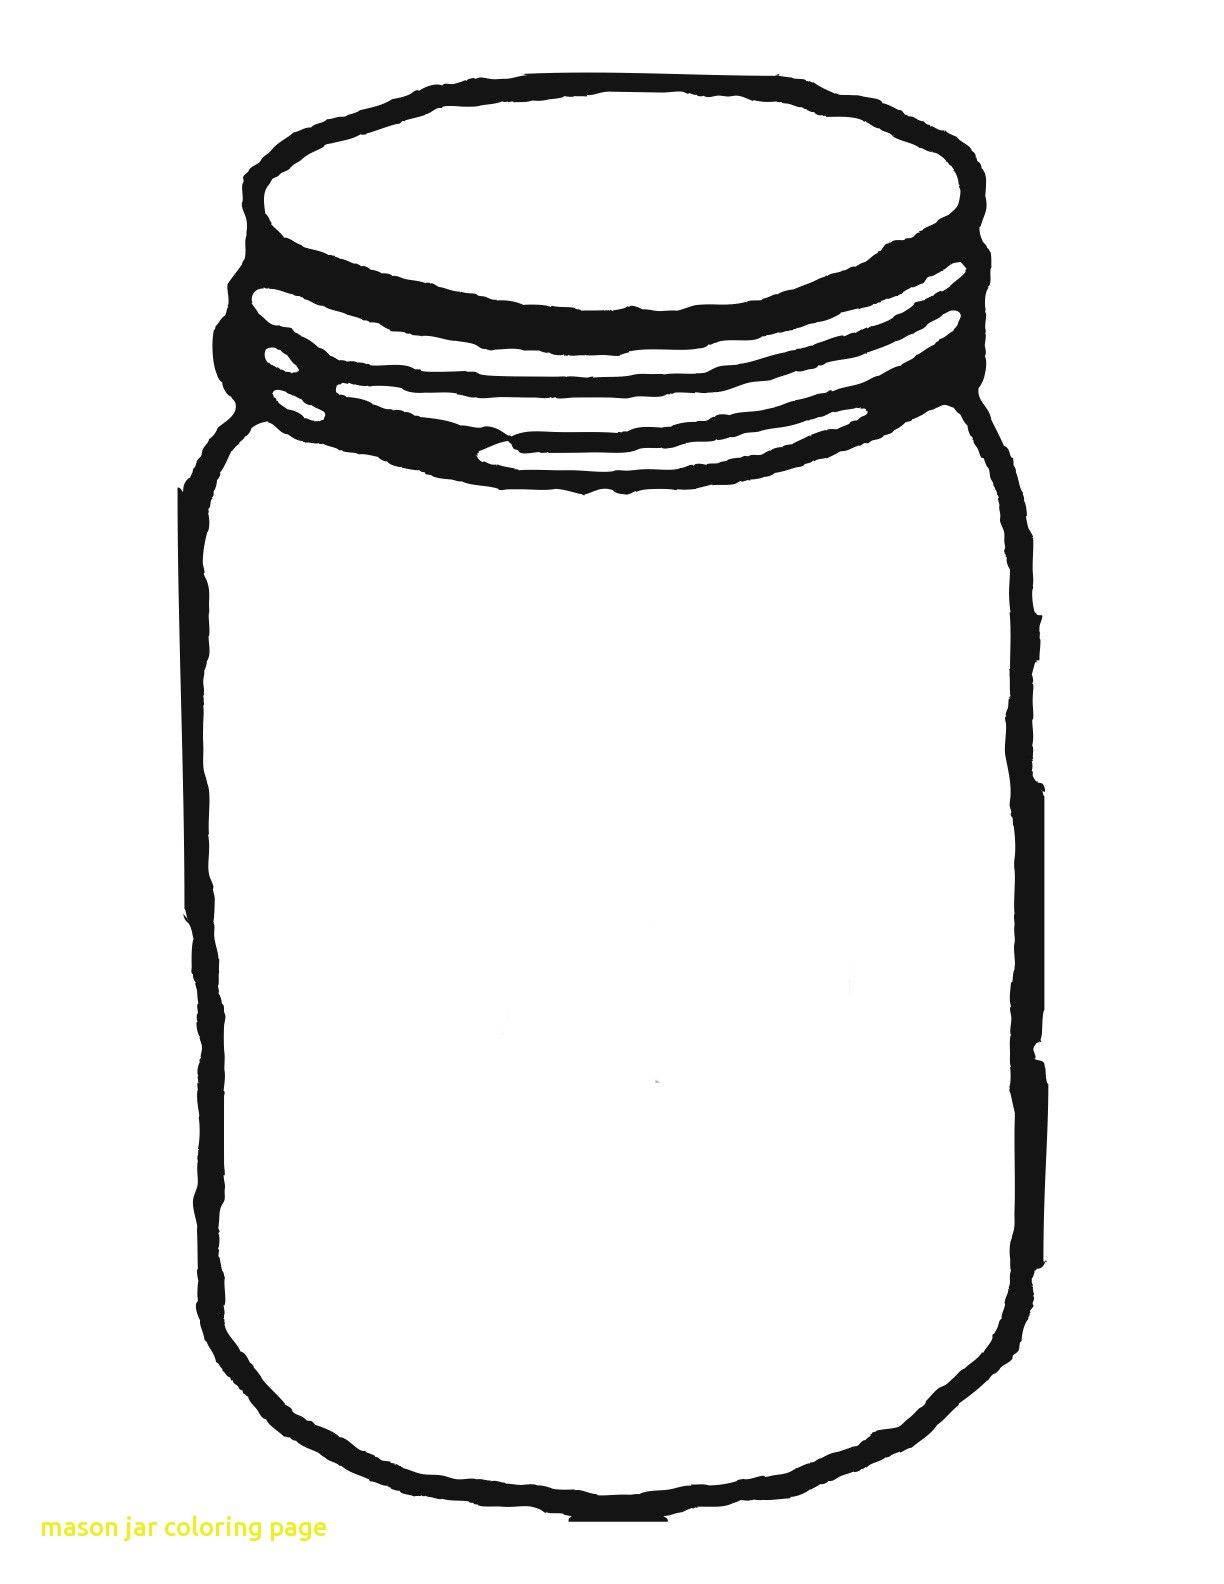 Mason Jar Coloring Page With Template For Clipart Clipartwiz